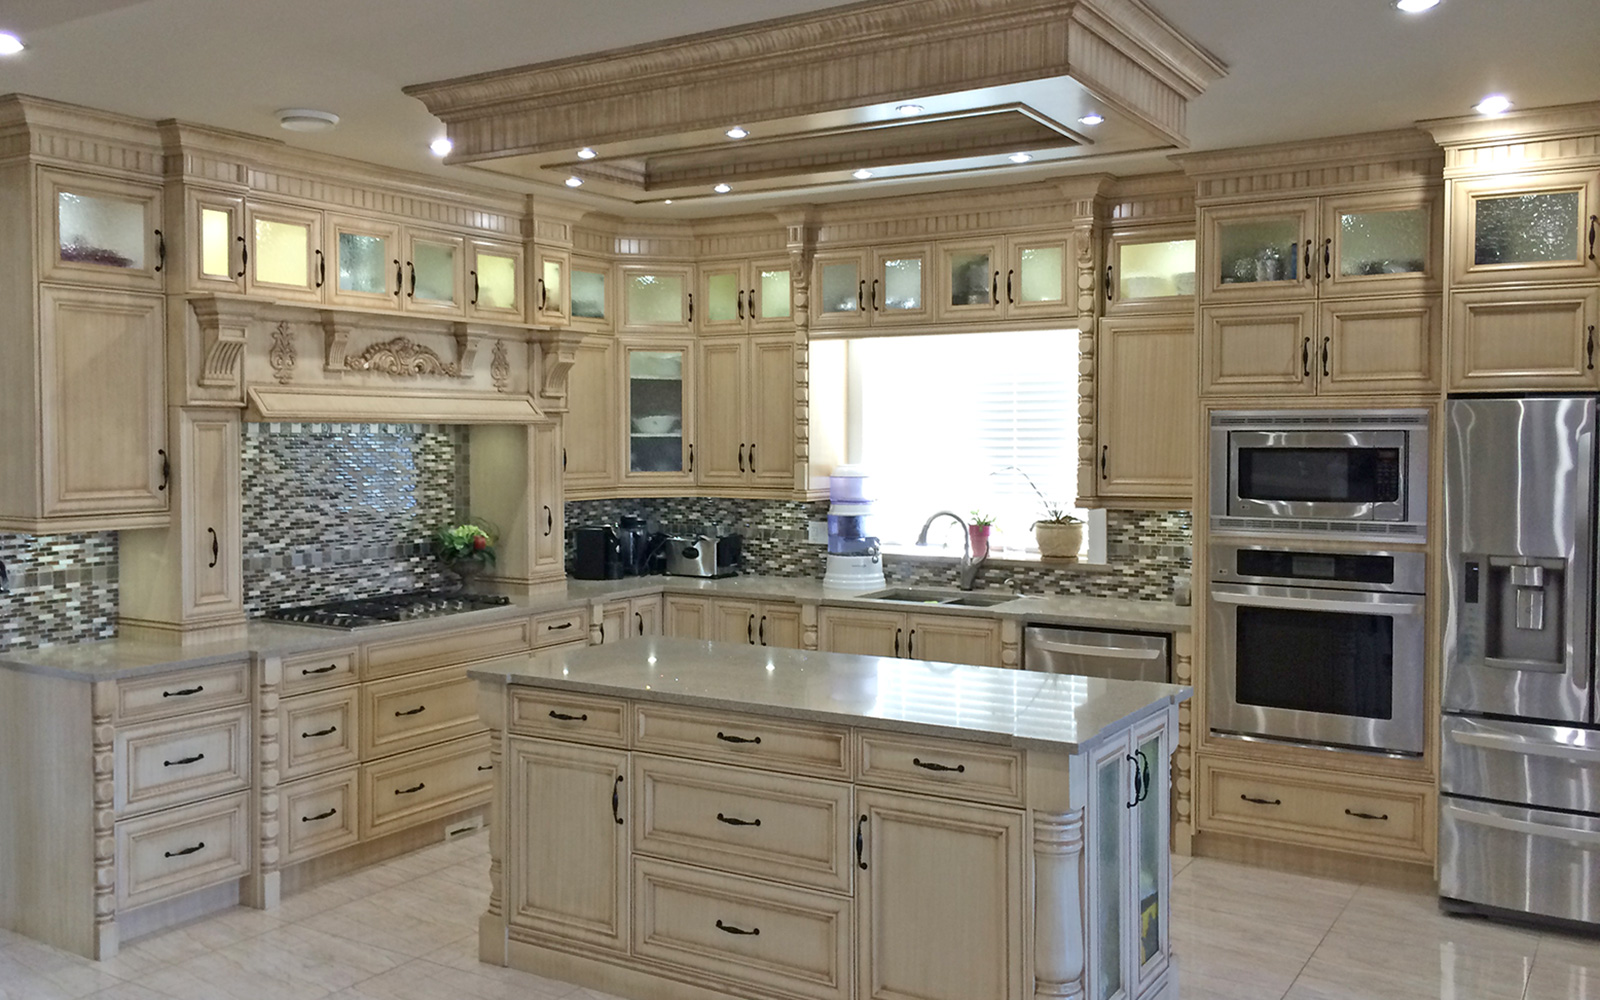 Custom kitchen cabinets beautiful affordable custom for Cabinetry kitchen cabinets